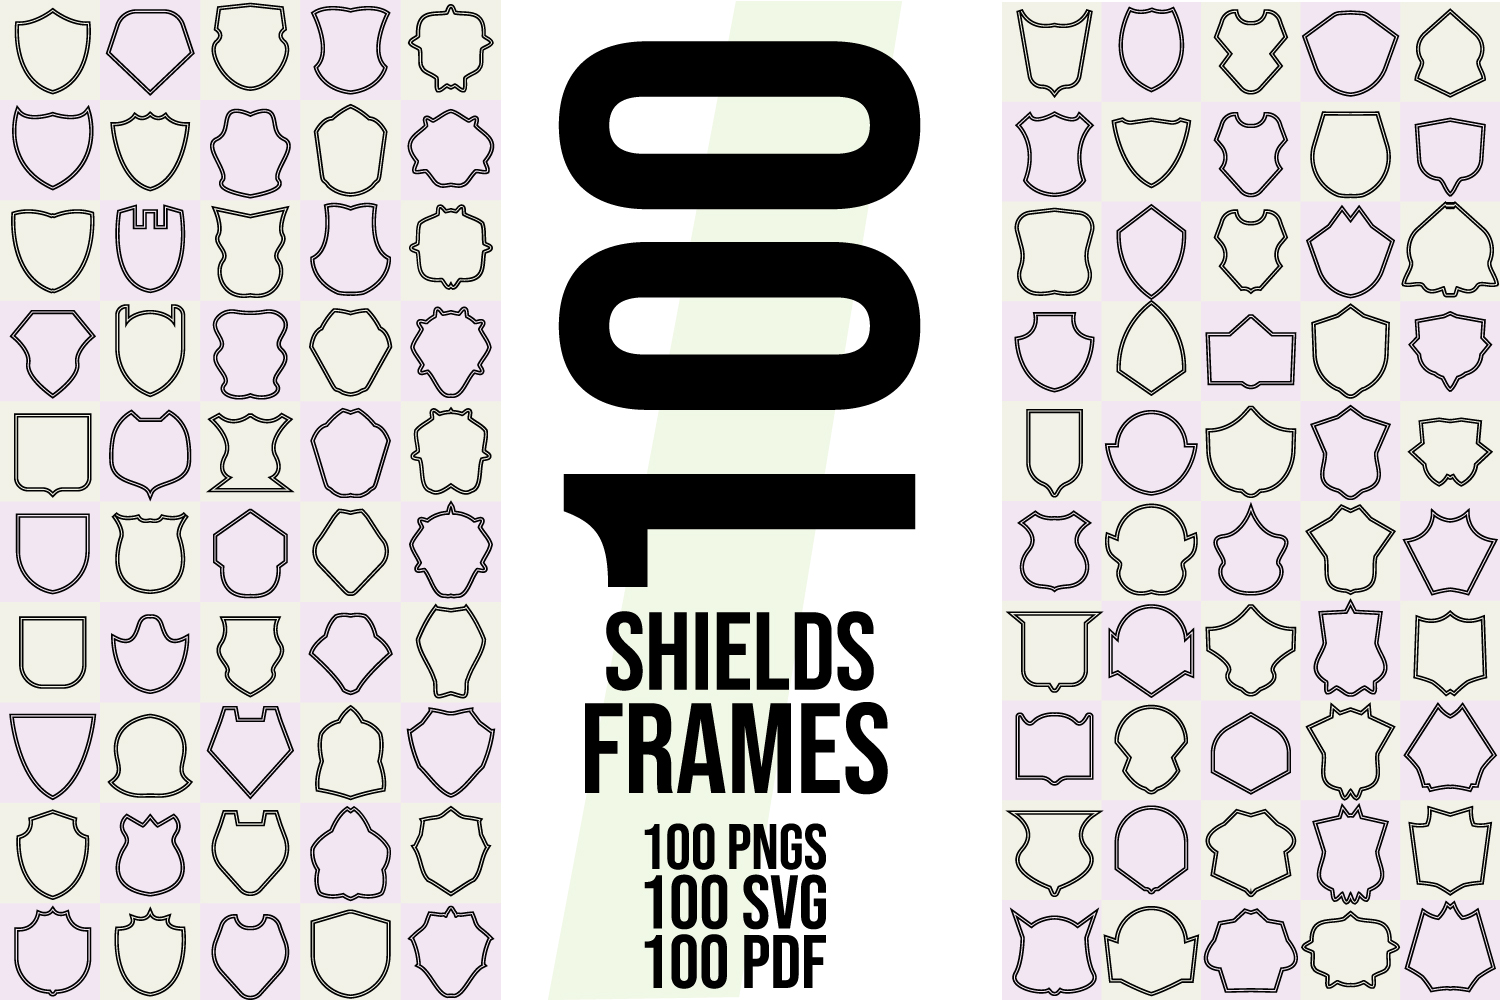 200 Shields and Frames SVG, AI, EPS, PDF, PNG example image 3